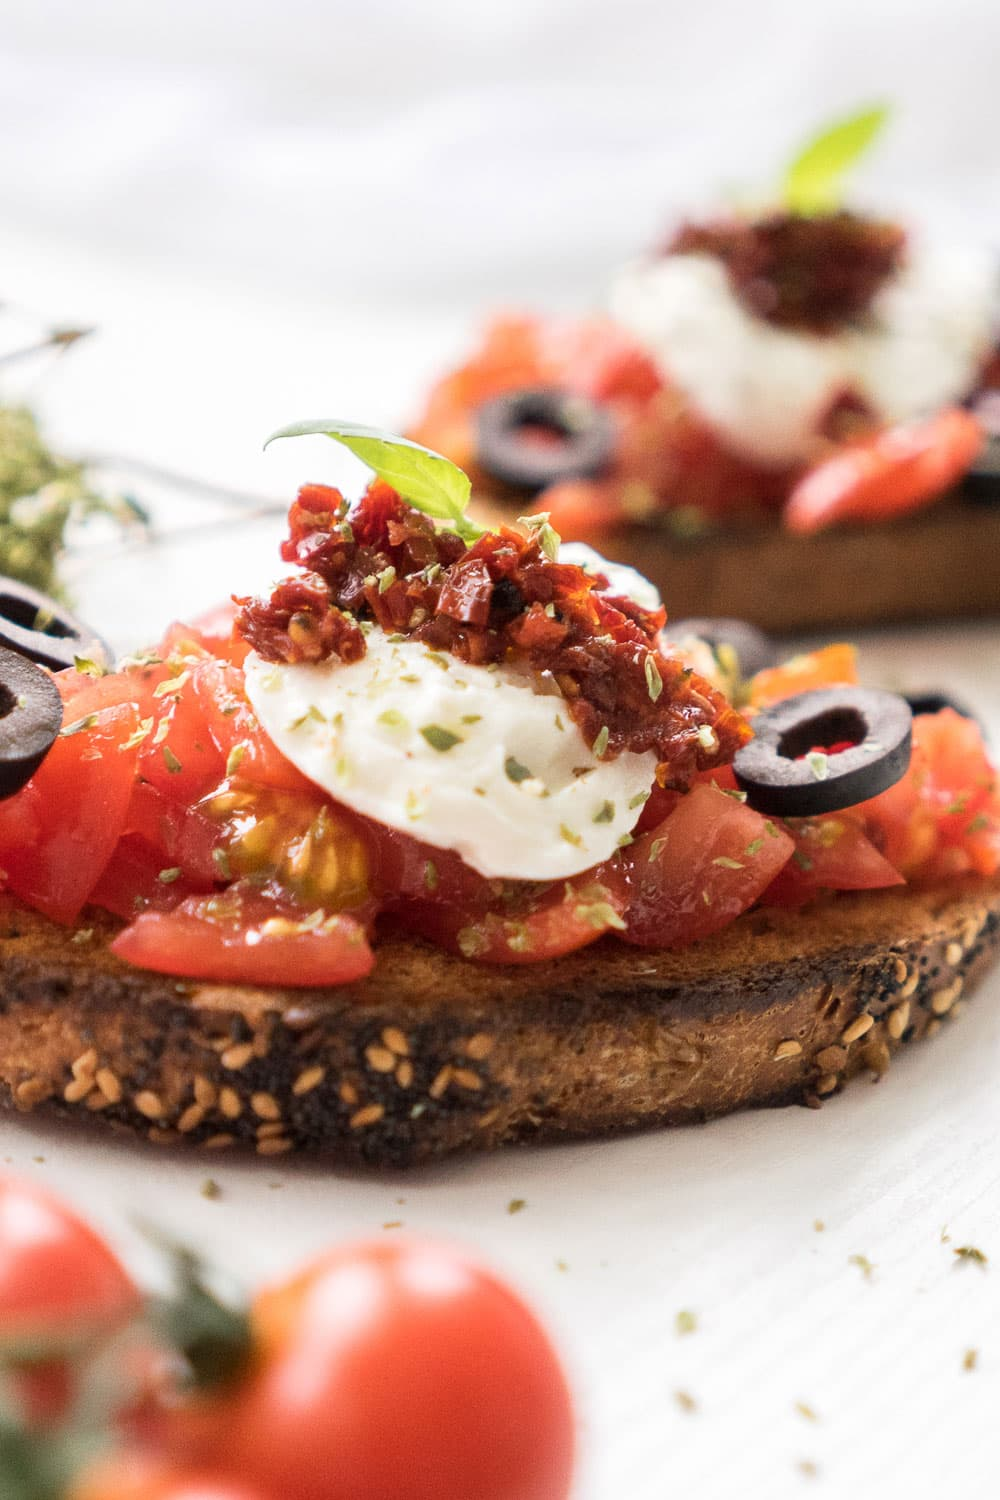 This perfect grilled bruschetta with mozzarella and tomatoes recipe will make your summer BBQ special! Grilled smoky bread, delicious sun-ripened tomatoes, sun-dried tomatoes, extra virgin olive oil, delicious mozzarella and black olives make this the ultimate appetizer for your summer parties!